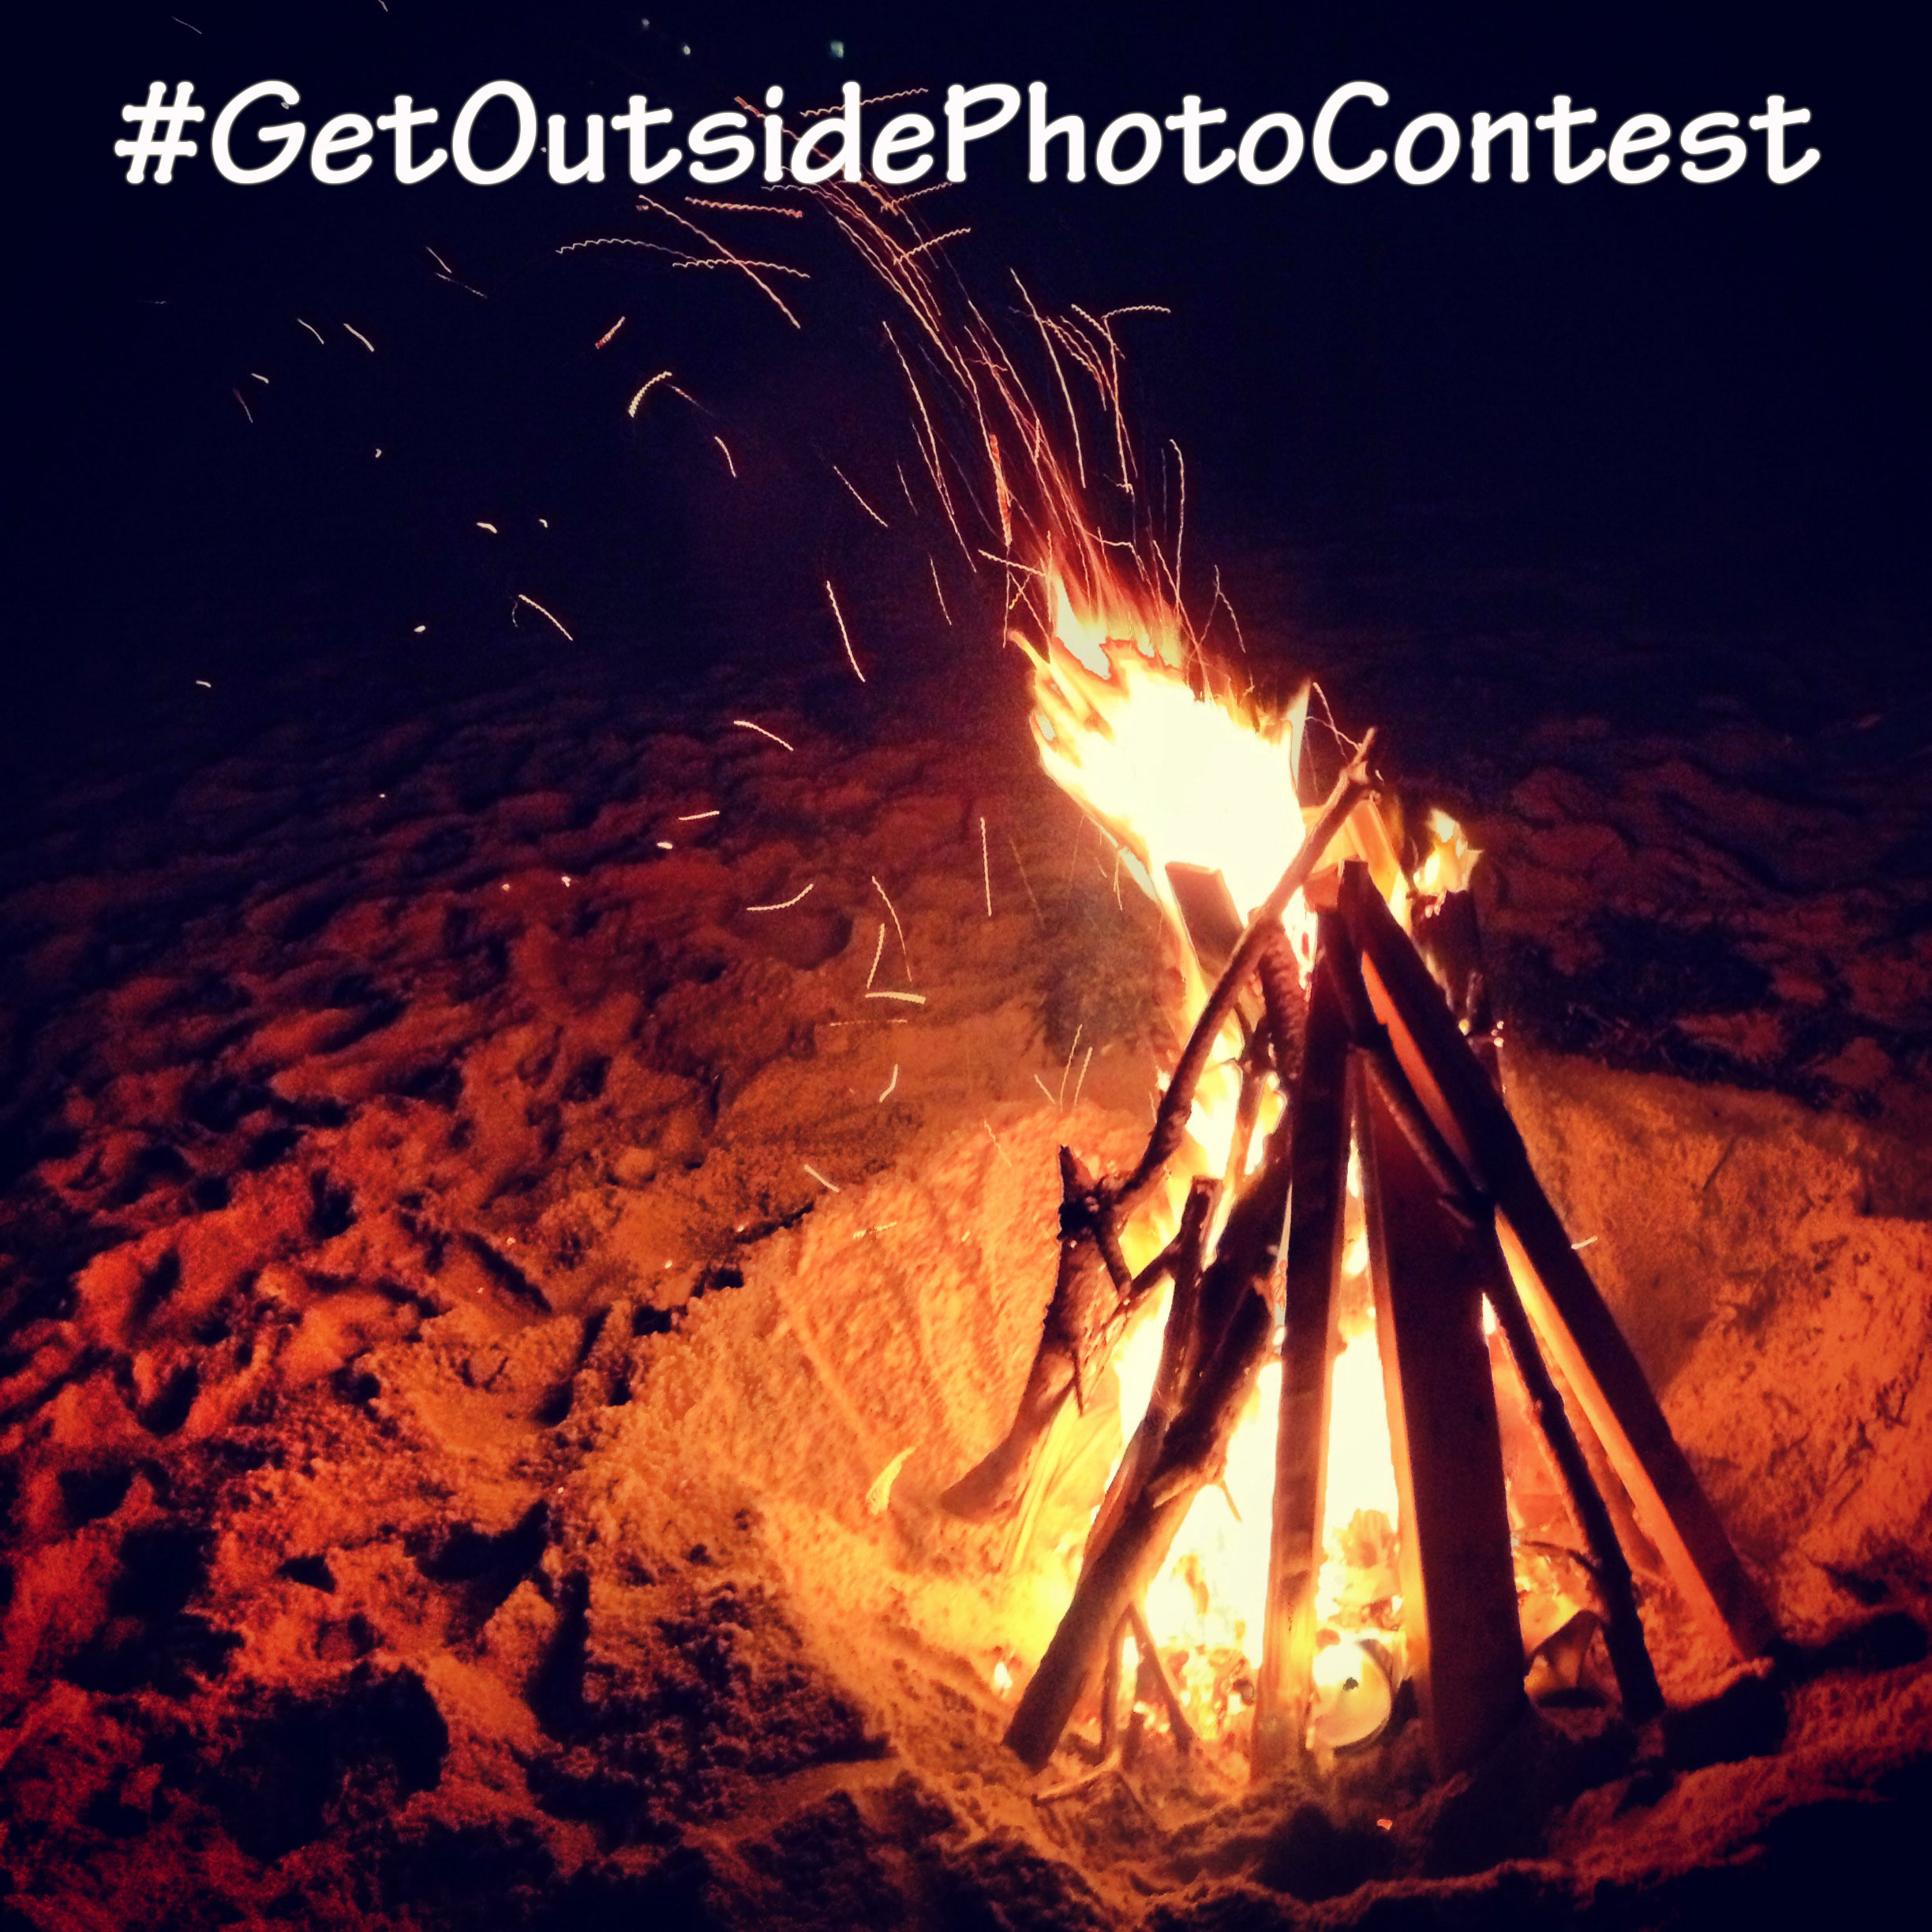 Beach bonfire in Cape Cod, MA with #getoutsidephotocontest